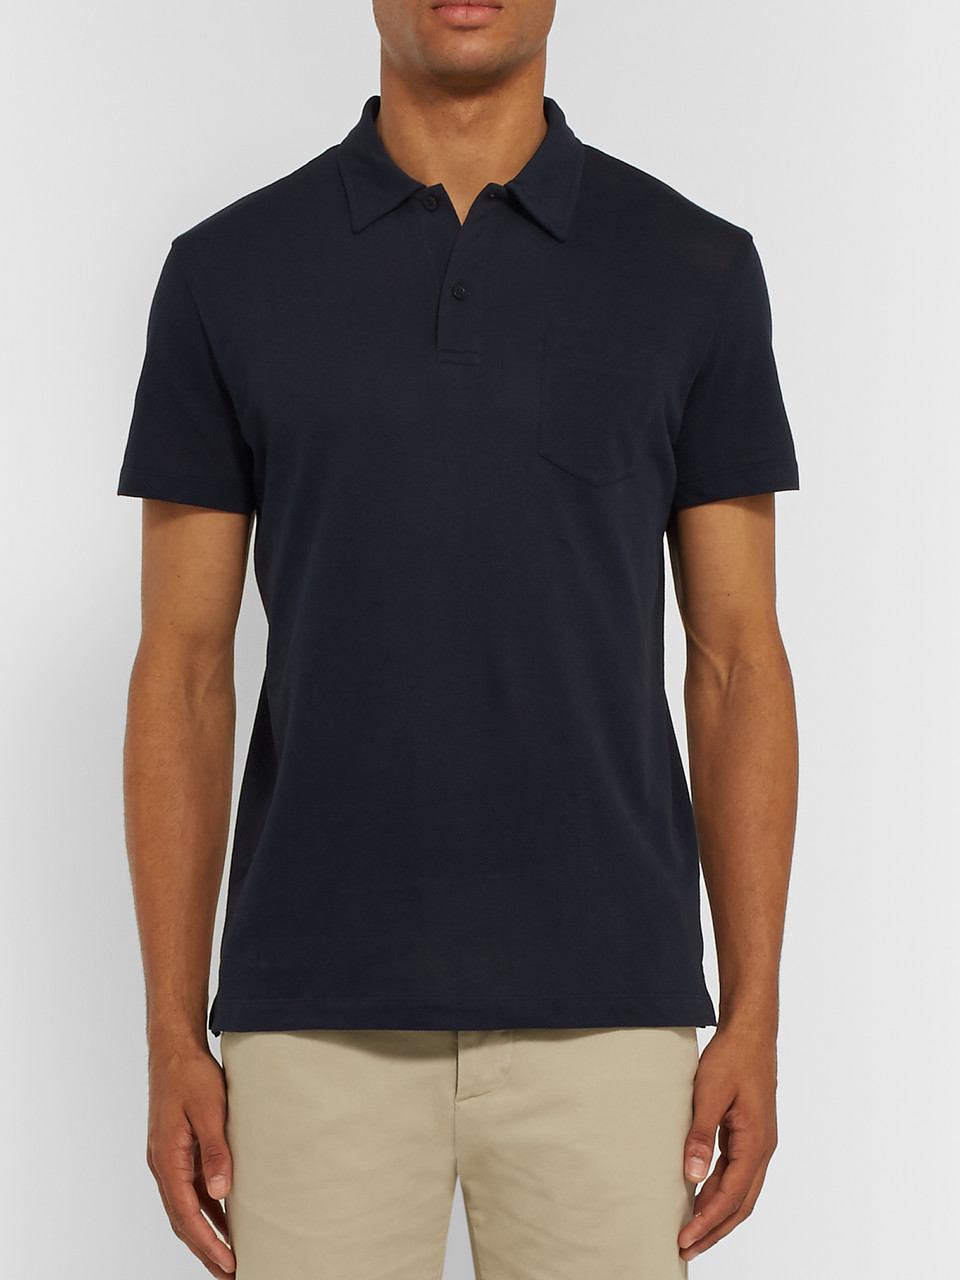 Sunspel Riviera Slim-Fit Cotton-Mesh Polo Shirt